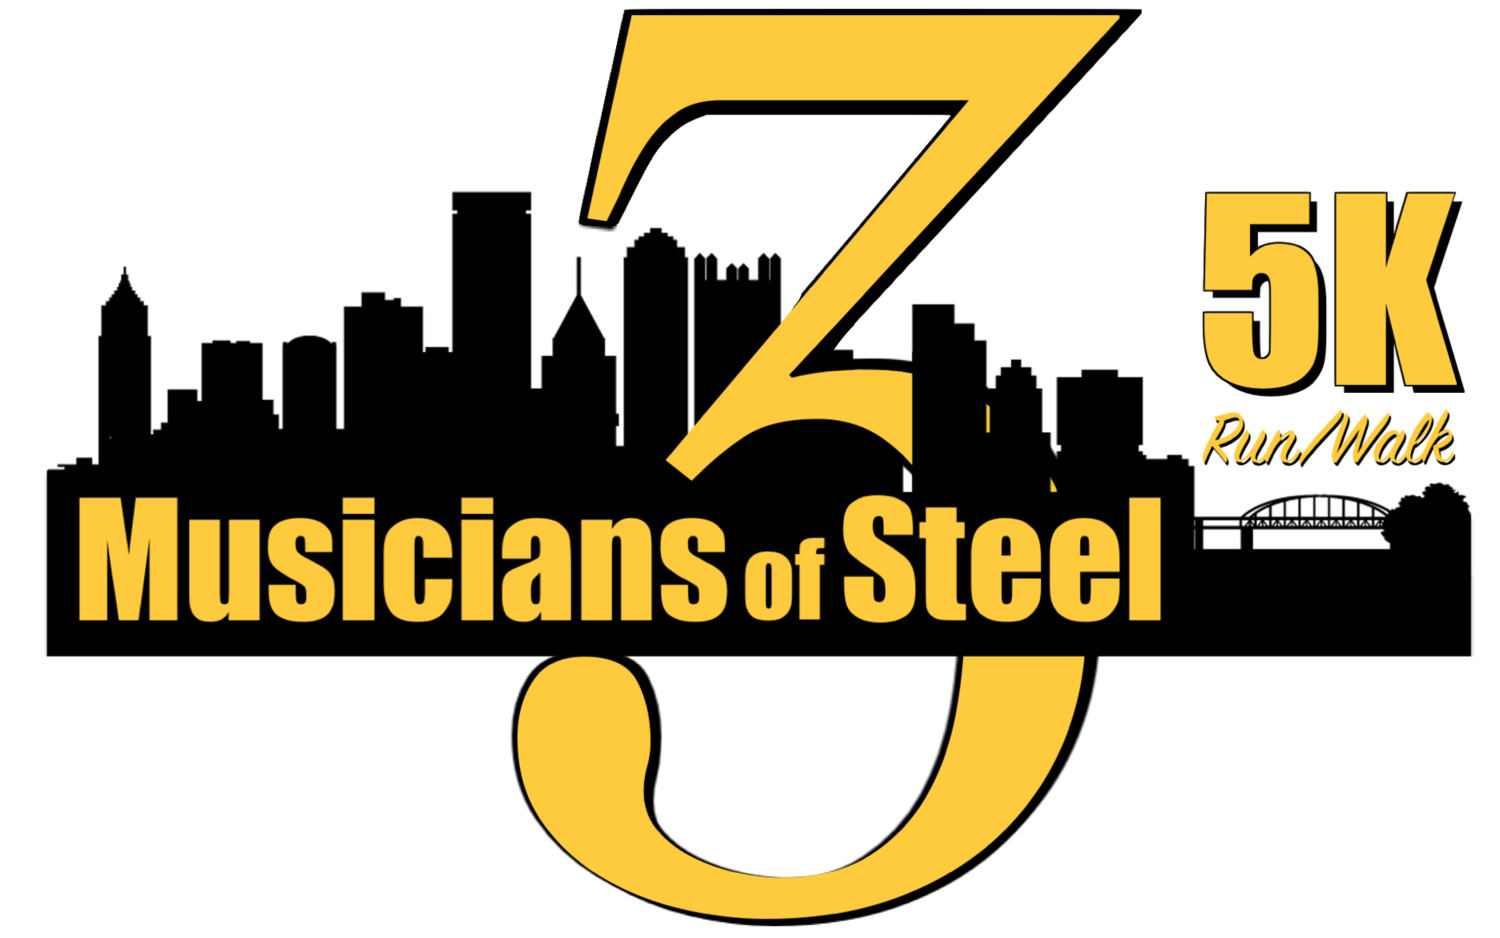 Musicians of Steel 5K Run/Walk